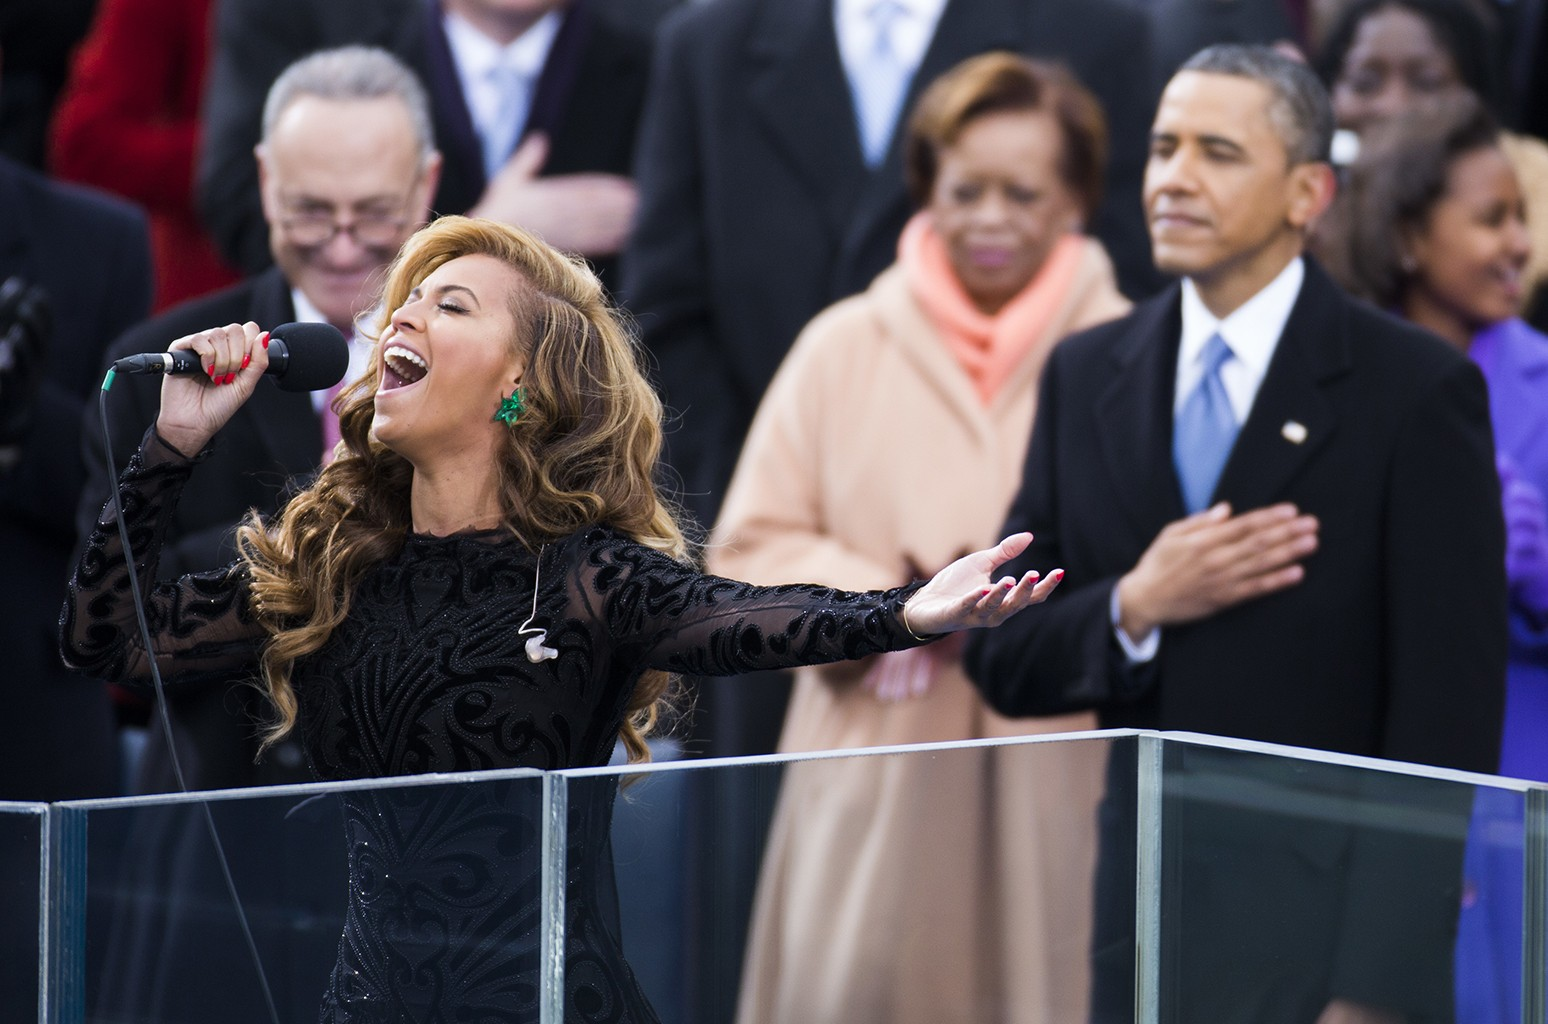 Beyonce during the Inauguration